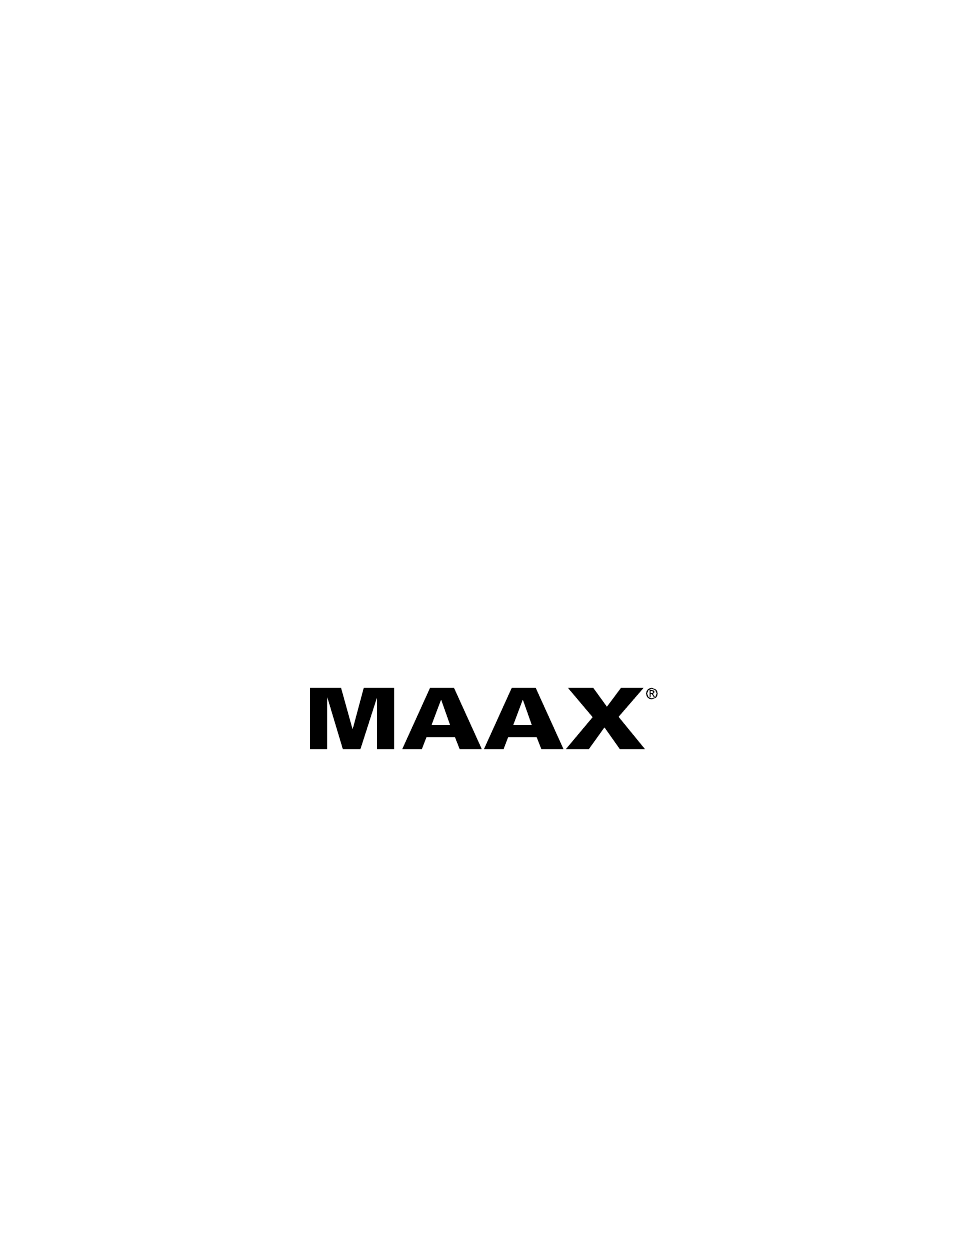 MAAX 59 PANAMA User Manual | Page 12 / 12 | Also for: 73 MARGARITA ...